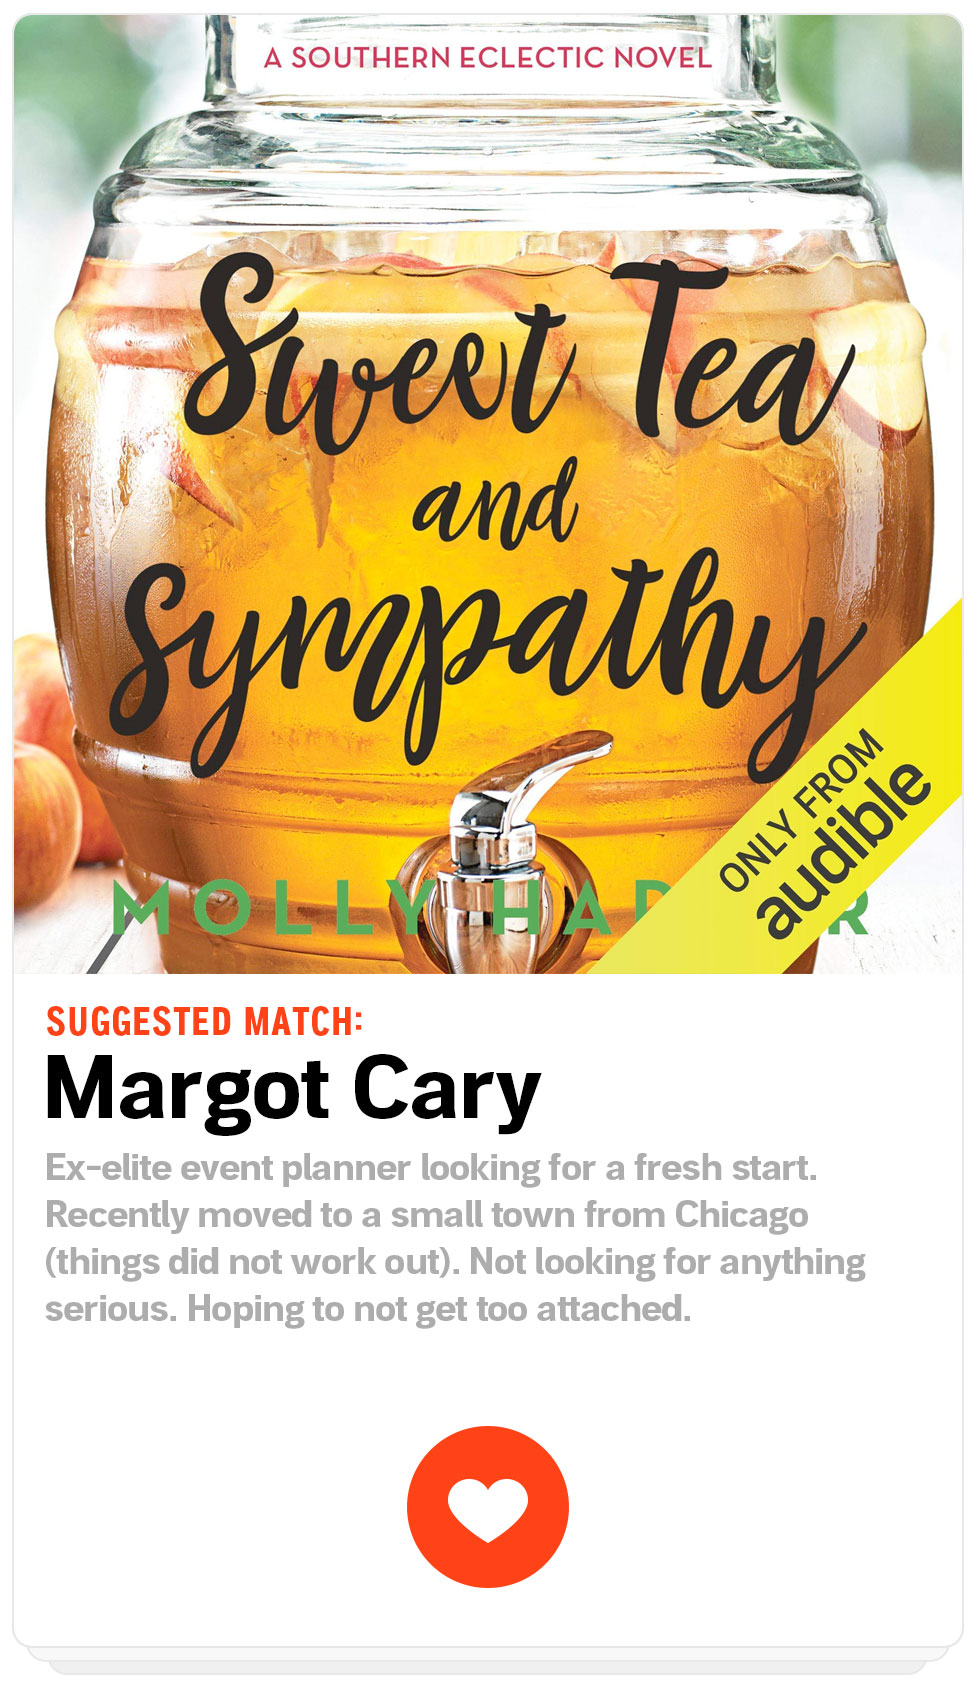 Suggested Match: Margot Cary